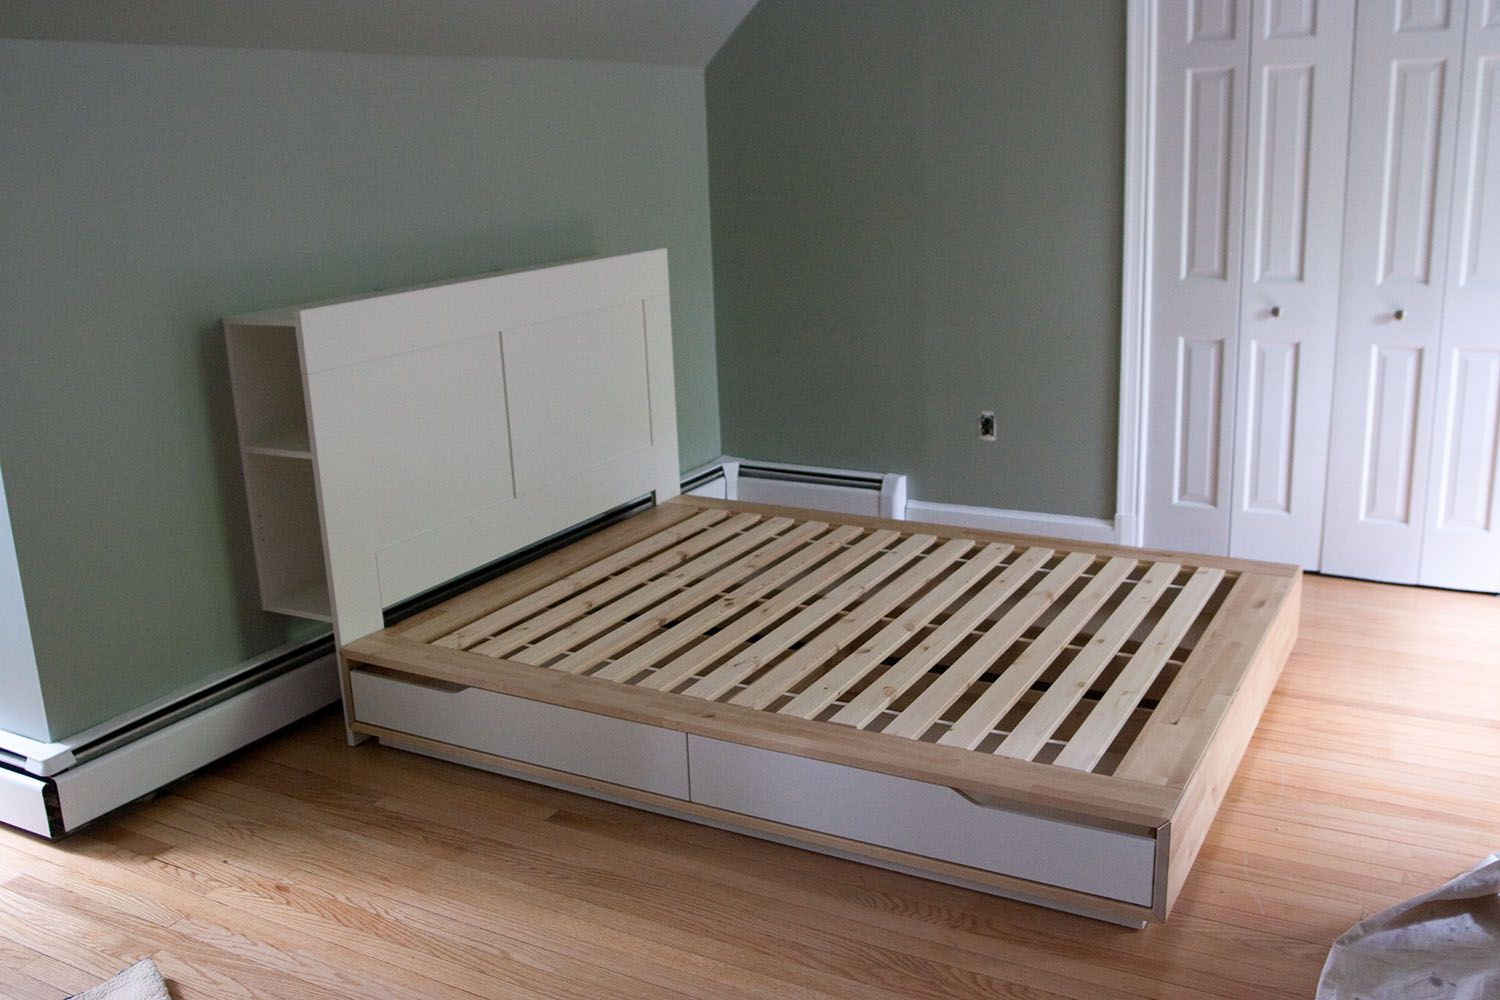 Ikea Mandal Bed in Birch, Full size, cost 329 Ikea